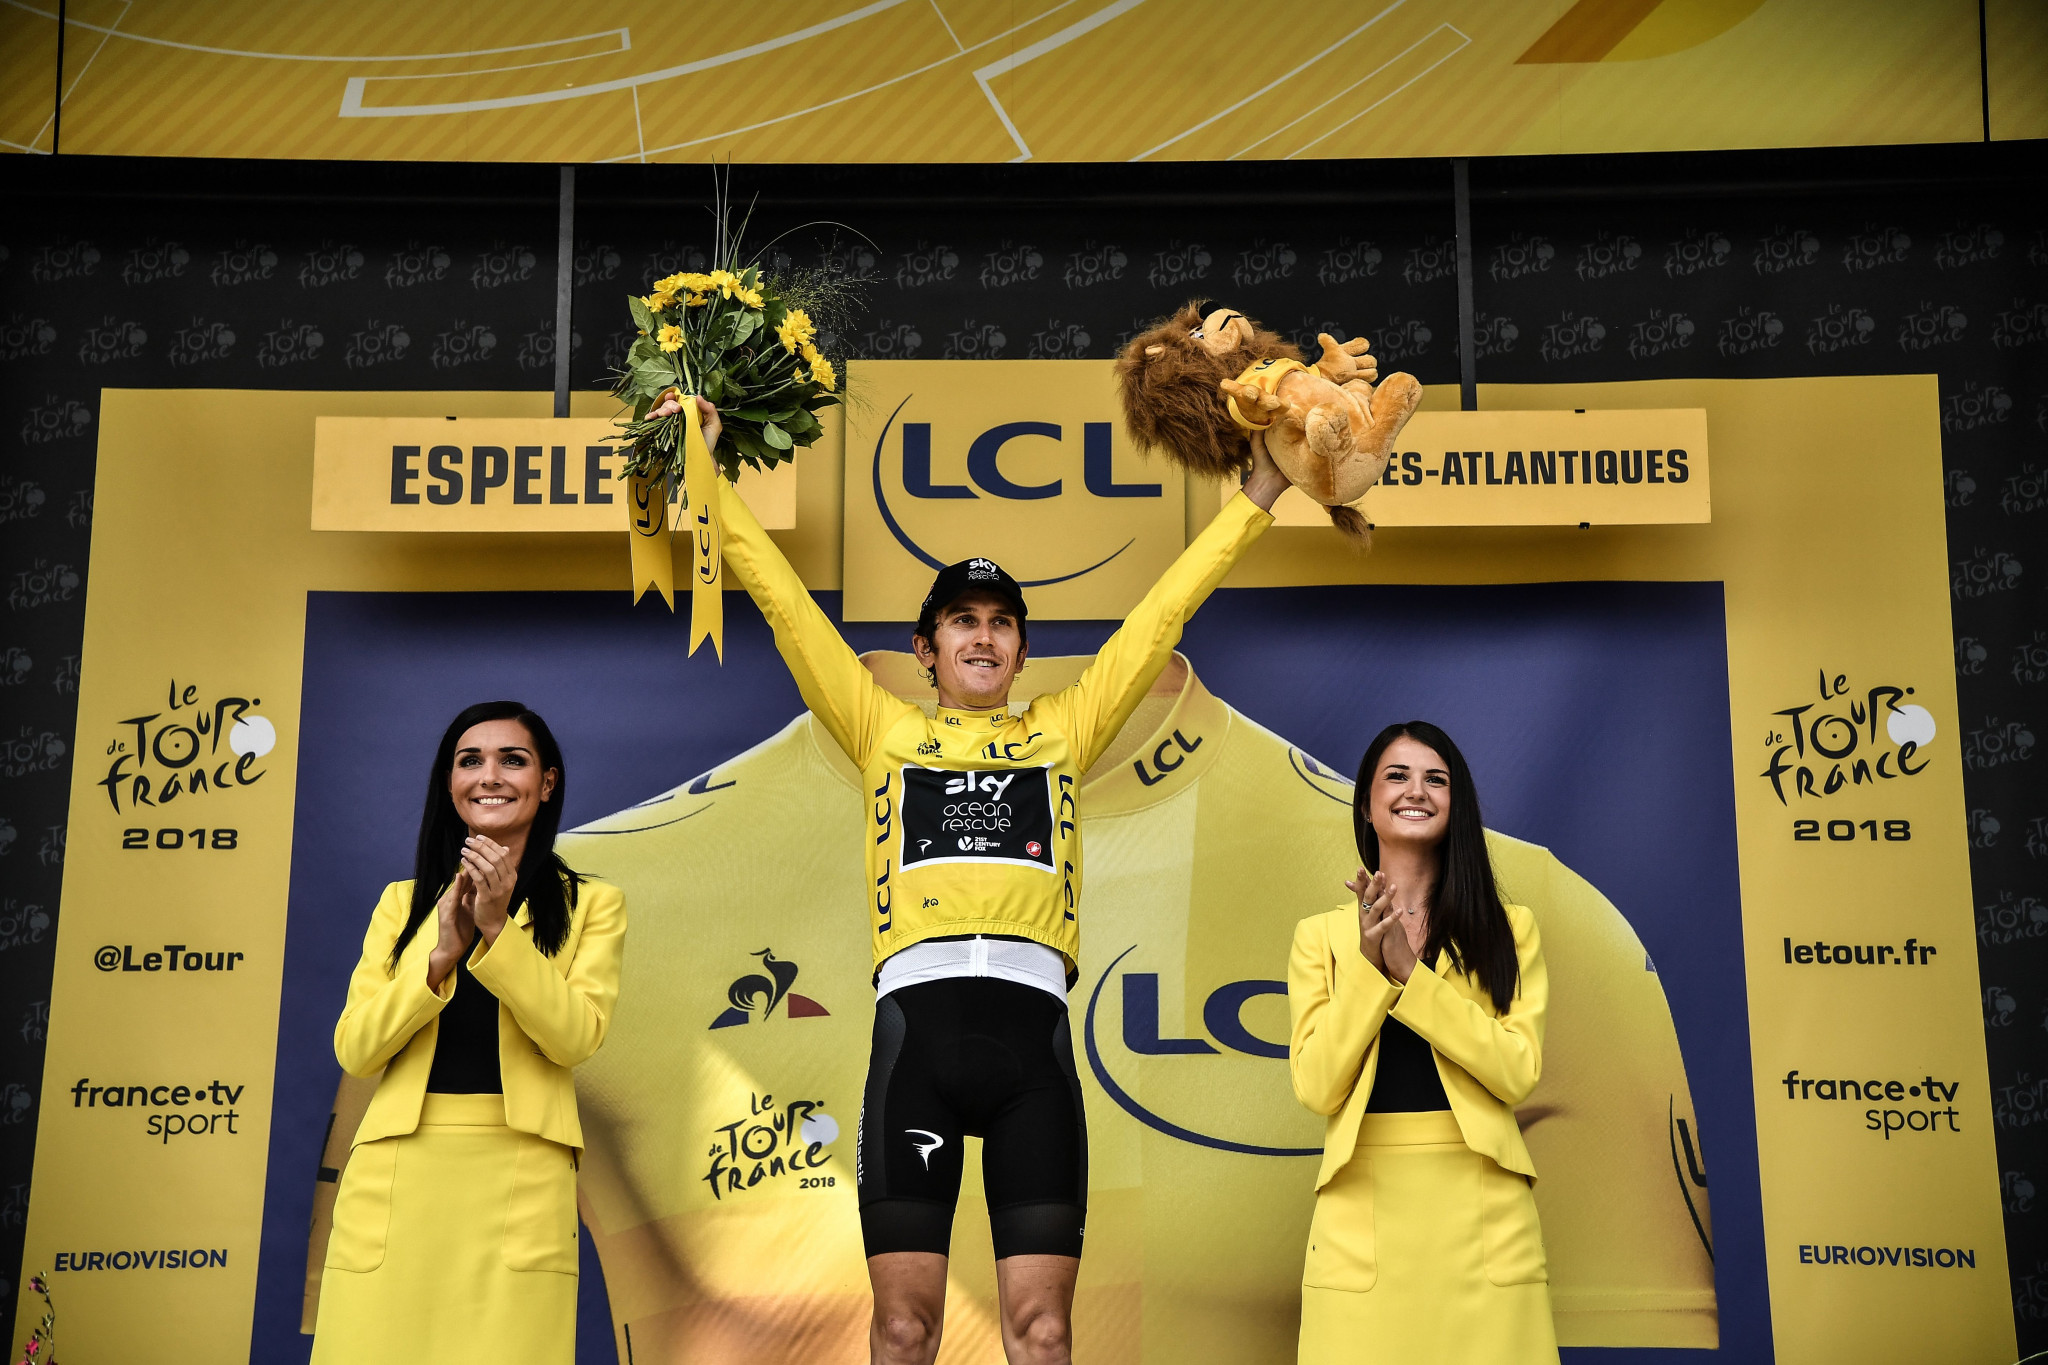 Geraint Thomas finished third in today's time trial and is set to help Team Sky claim their sixth Tour de France victory in seven years following Sir Bradley Wiggins in 2012 and Chris Froome in 2013, 2015, 2016 and 2017 ©Getty Images